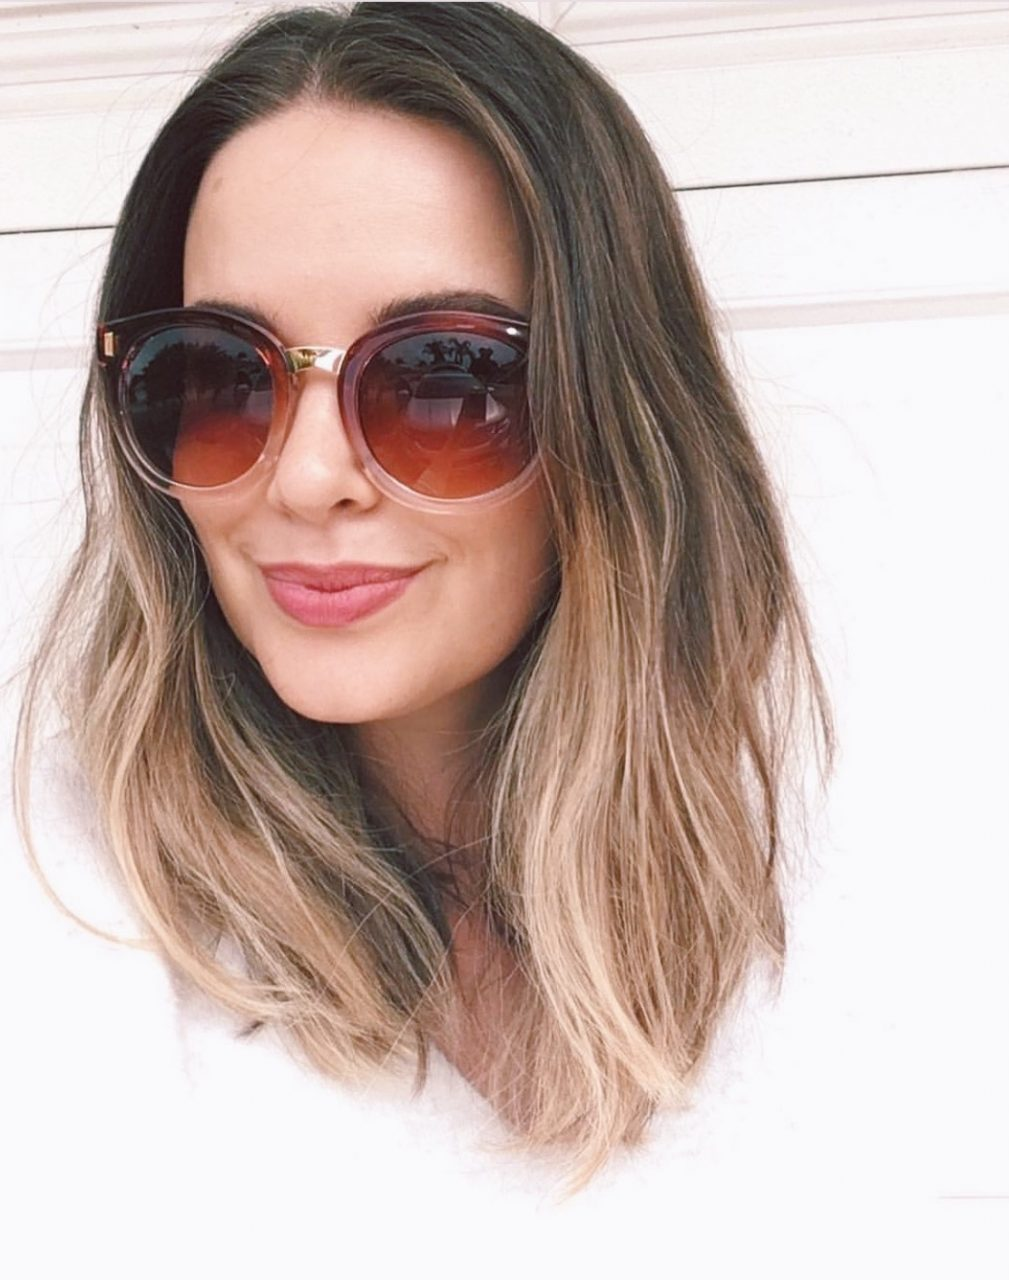 Air Dry Hair Tips, Best Products For Air Drying Hair